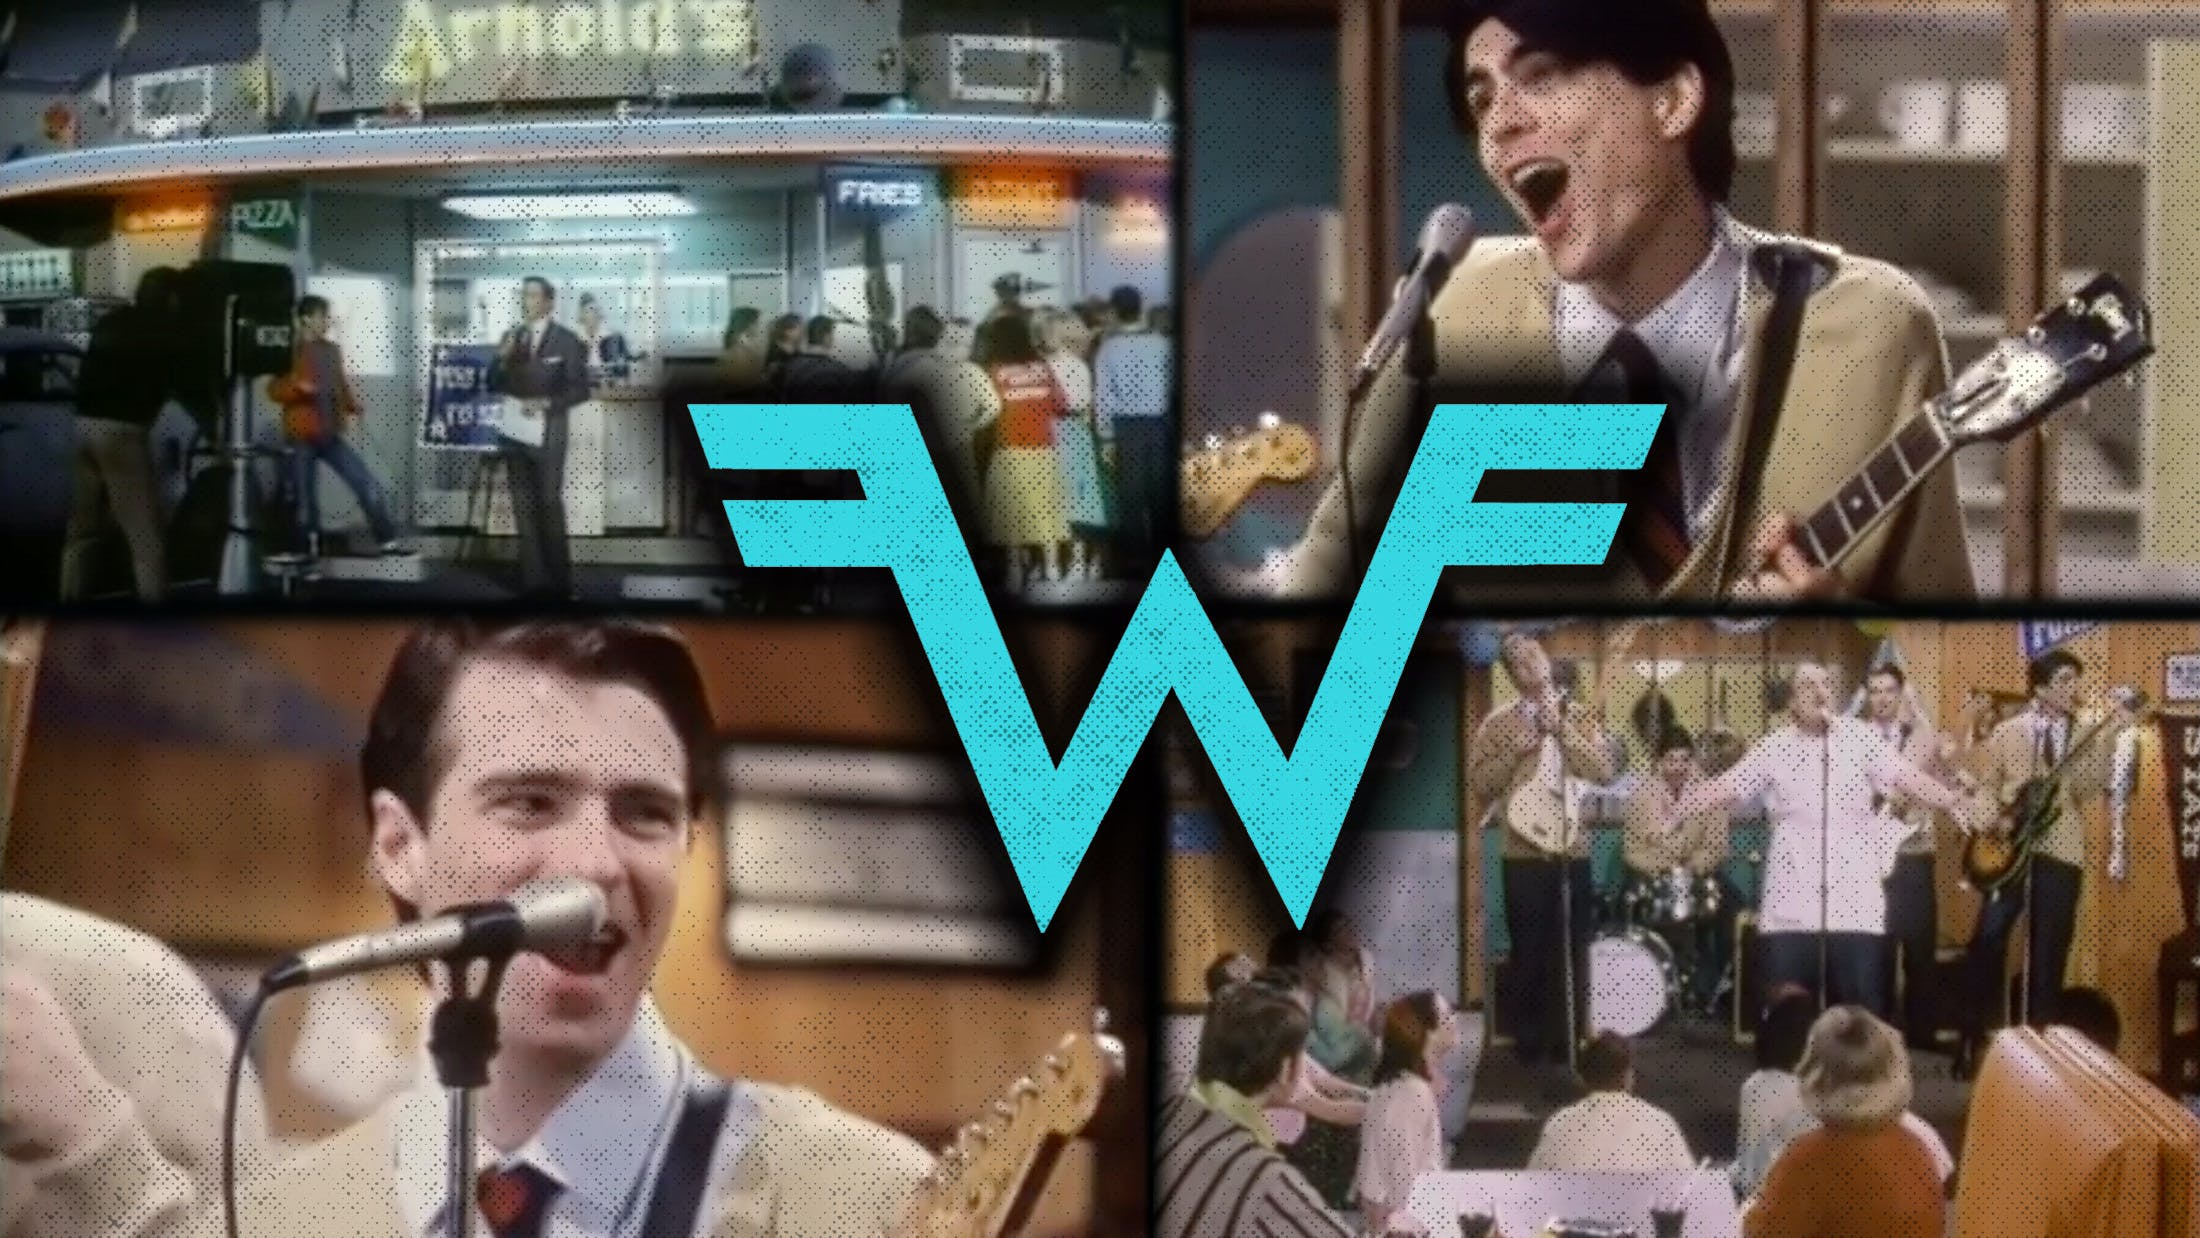 A Deep Dive Into Weezer's Buddy Holly Video